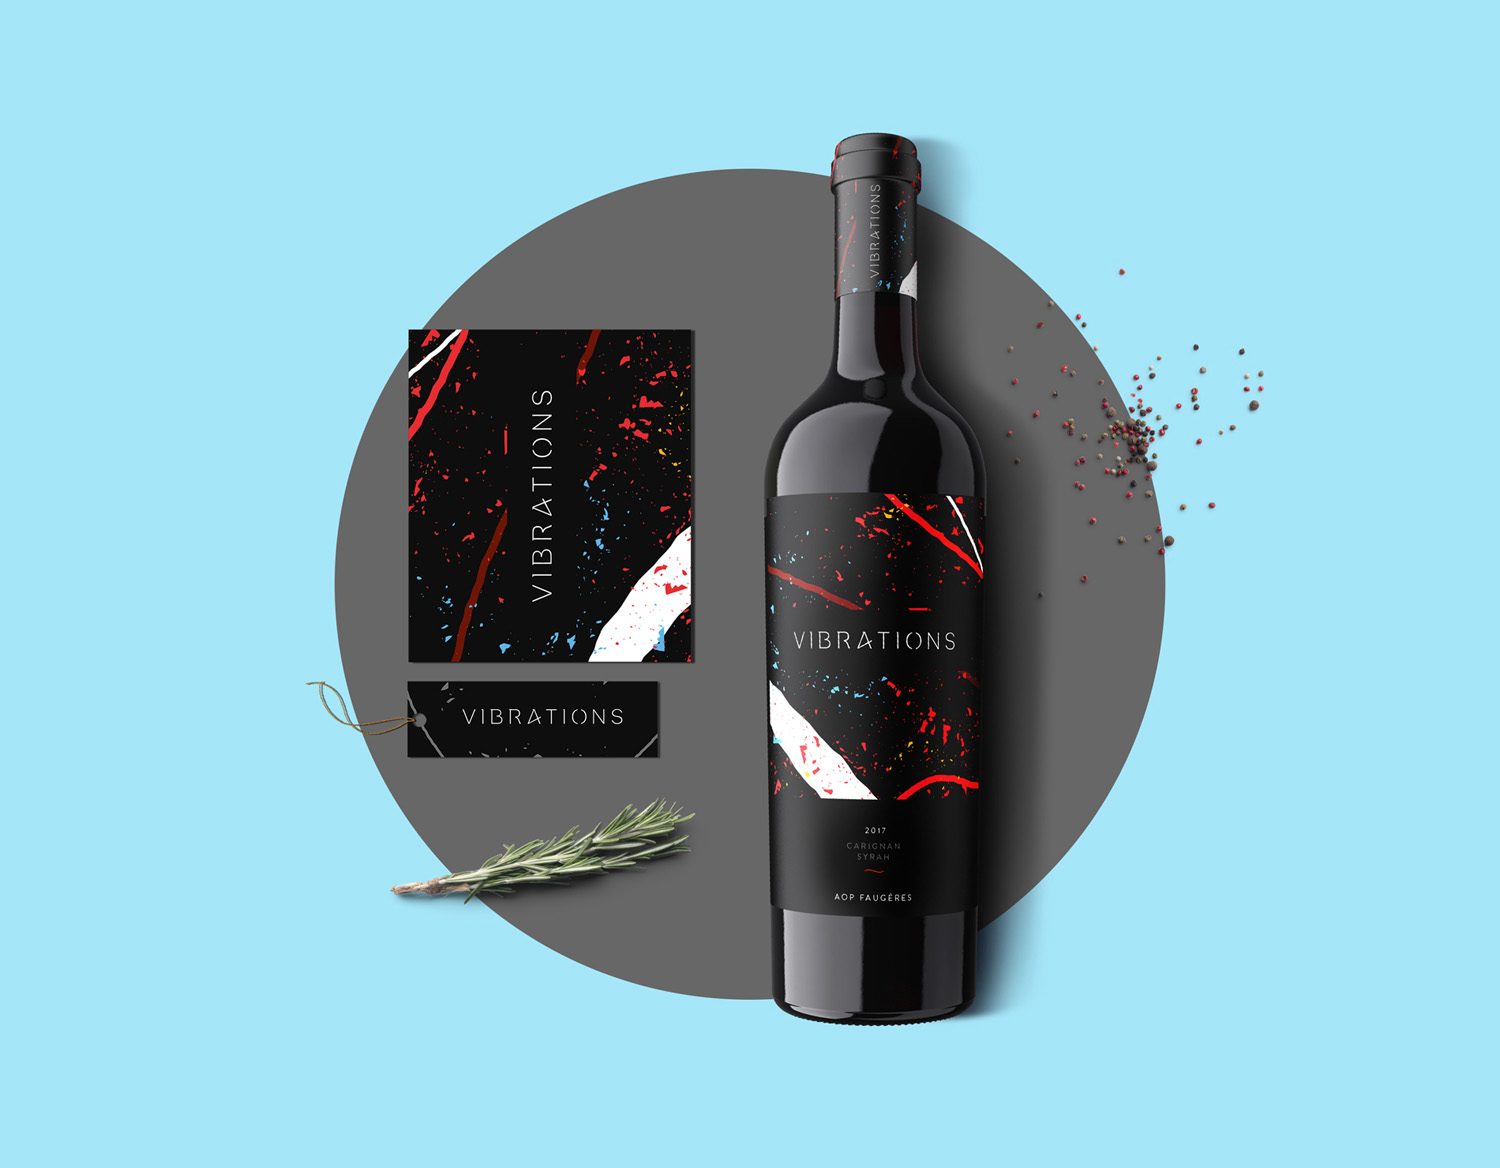 vibrations wine label design branding bottle and ingredients mockup design etiquette de vin